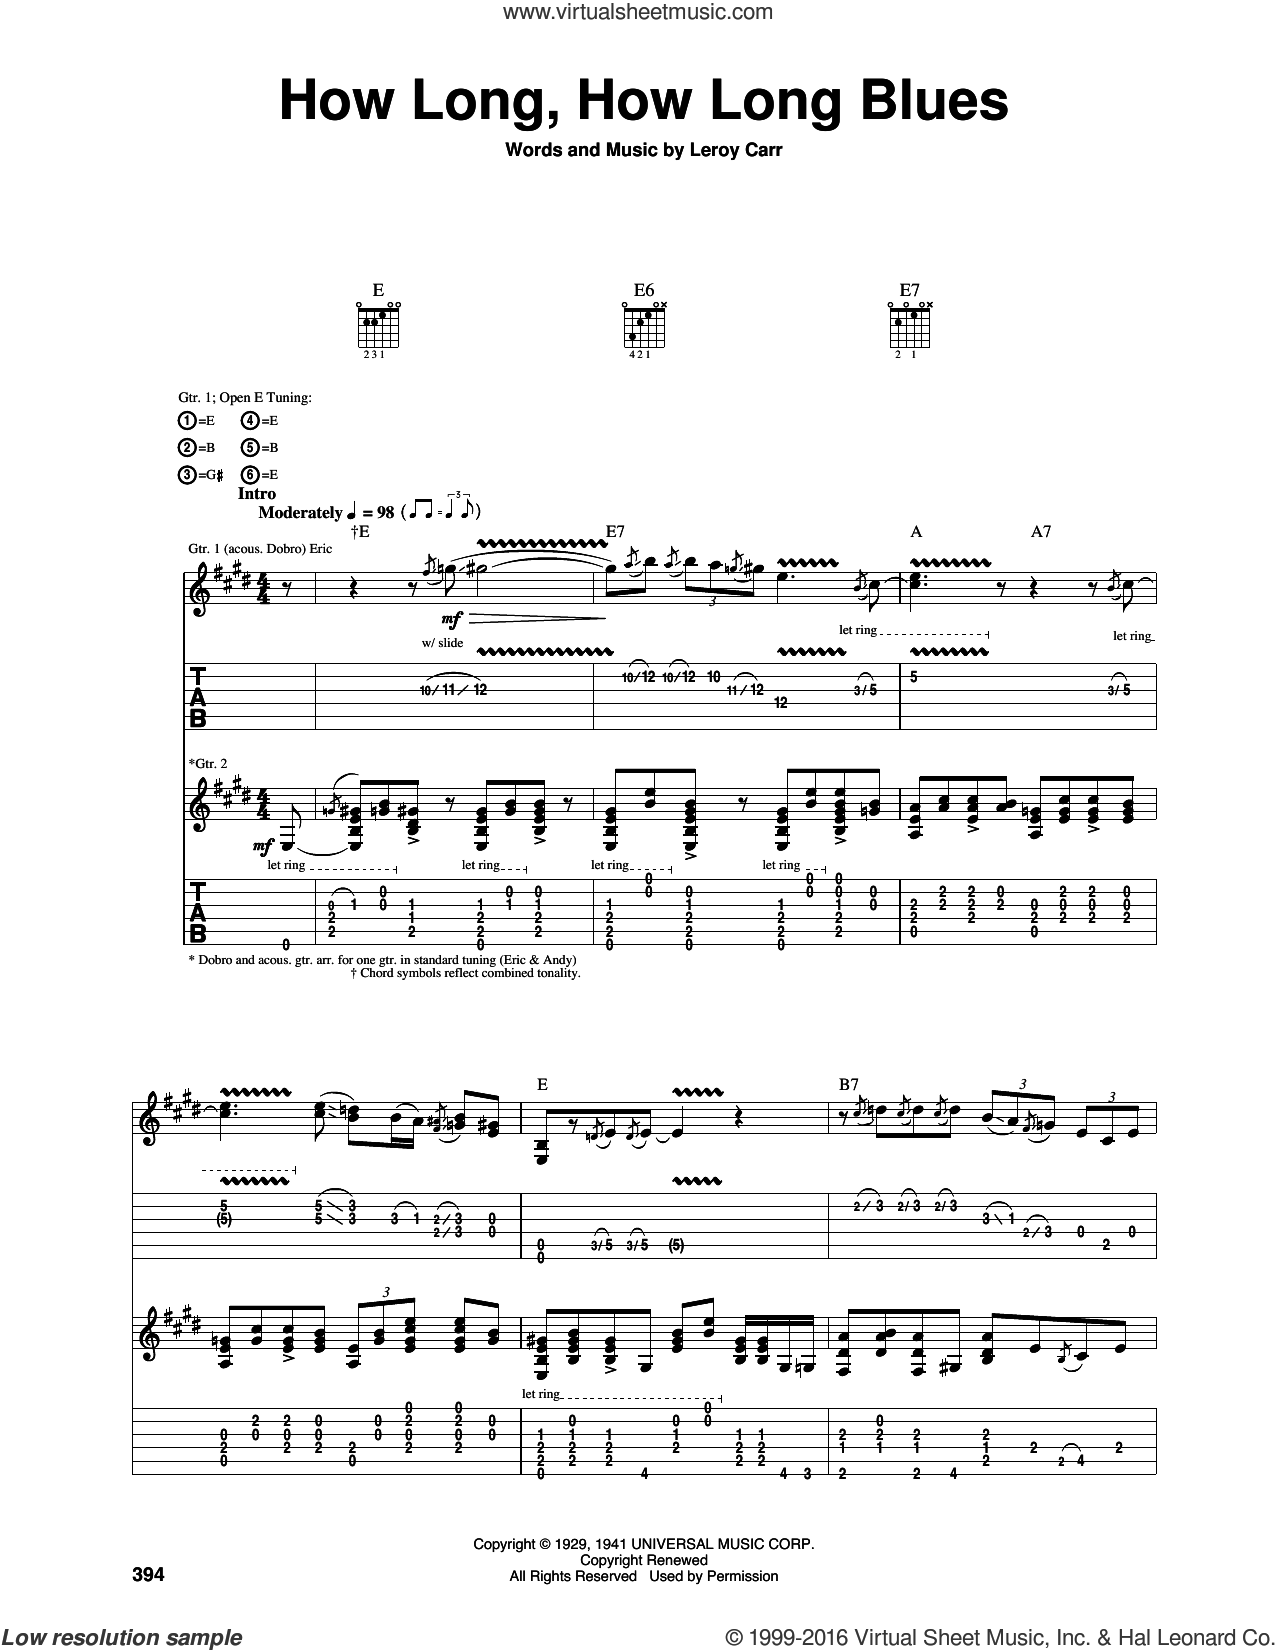 How Long Blues (How Long, How Long Blues) sheet music for guitar (tablature) by Eric Clapton and Leroy Carr. Score Image Preview.